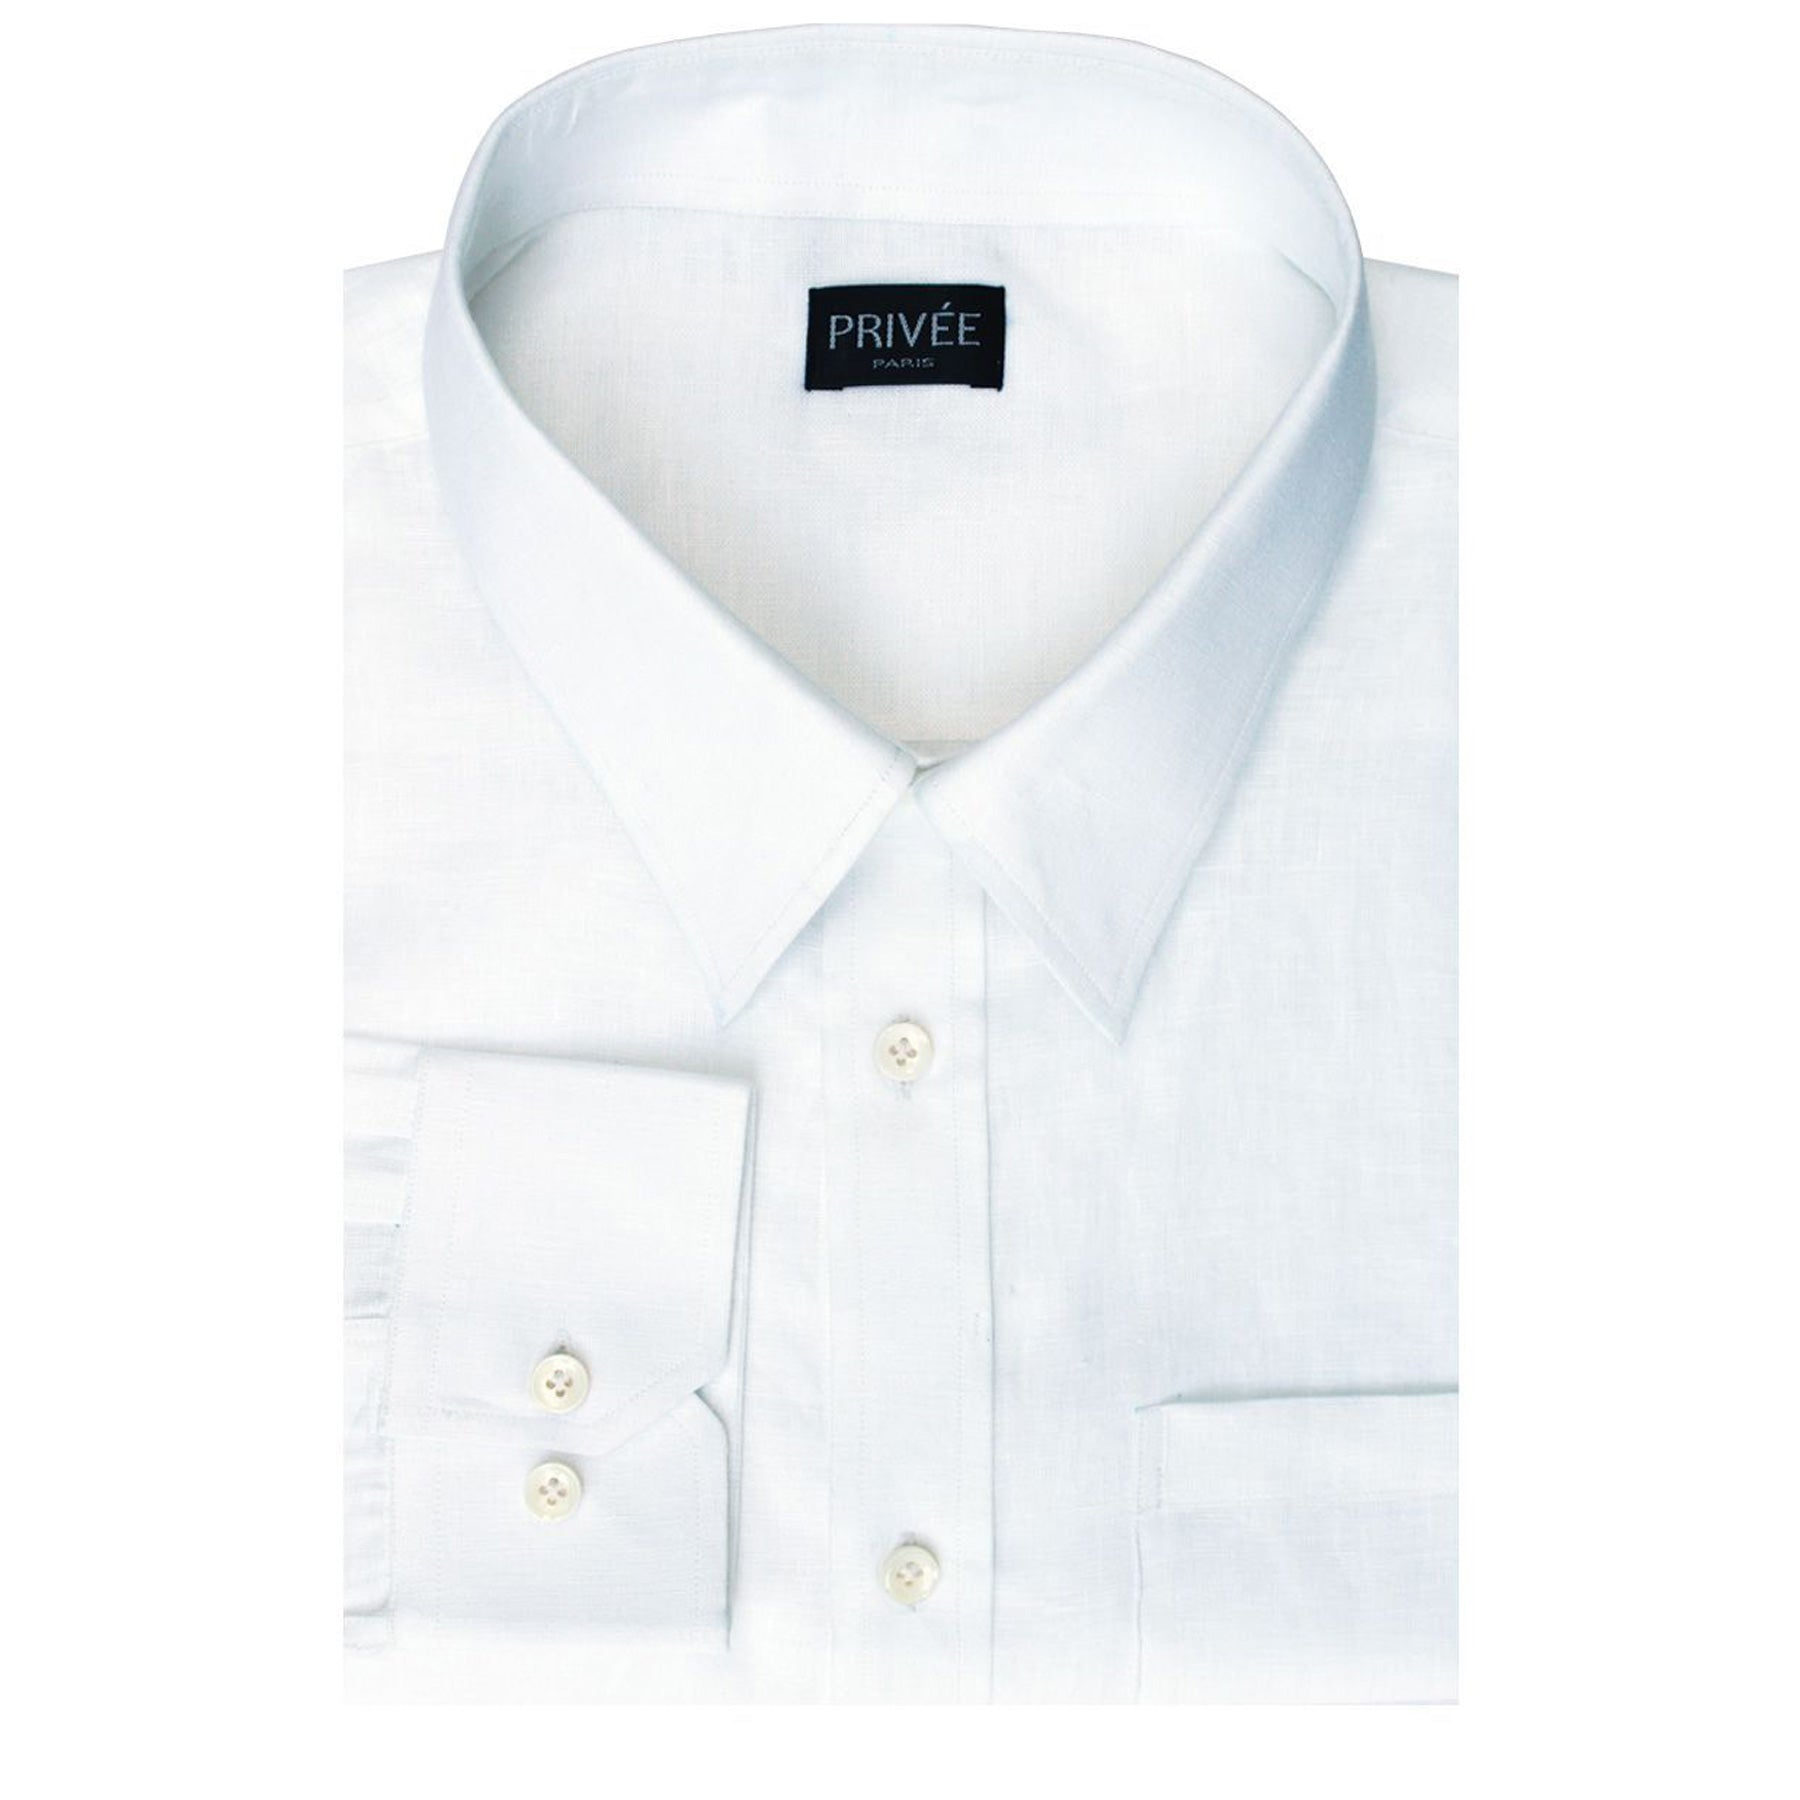 White Linen Shirt Online India